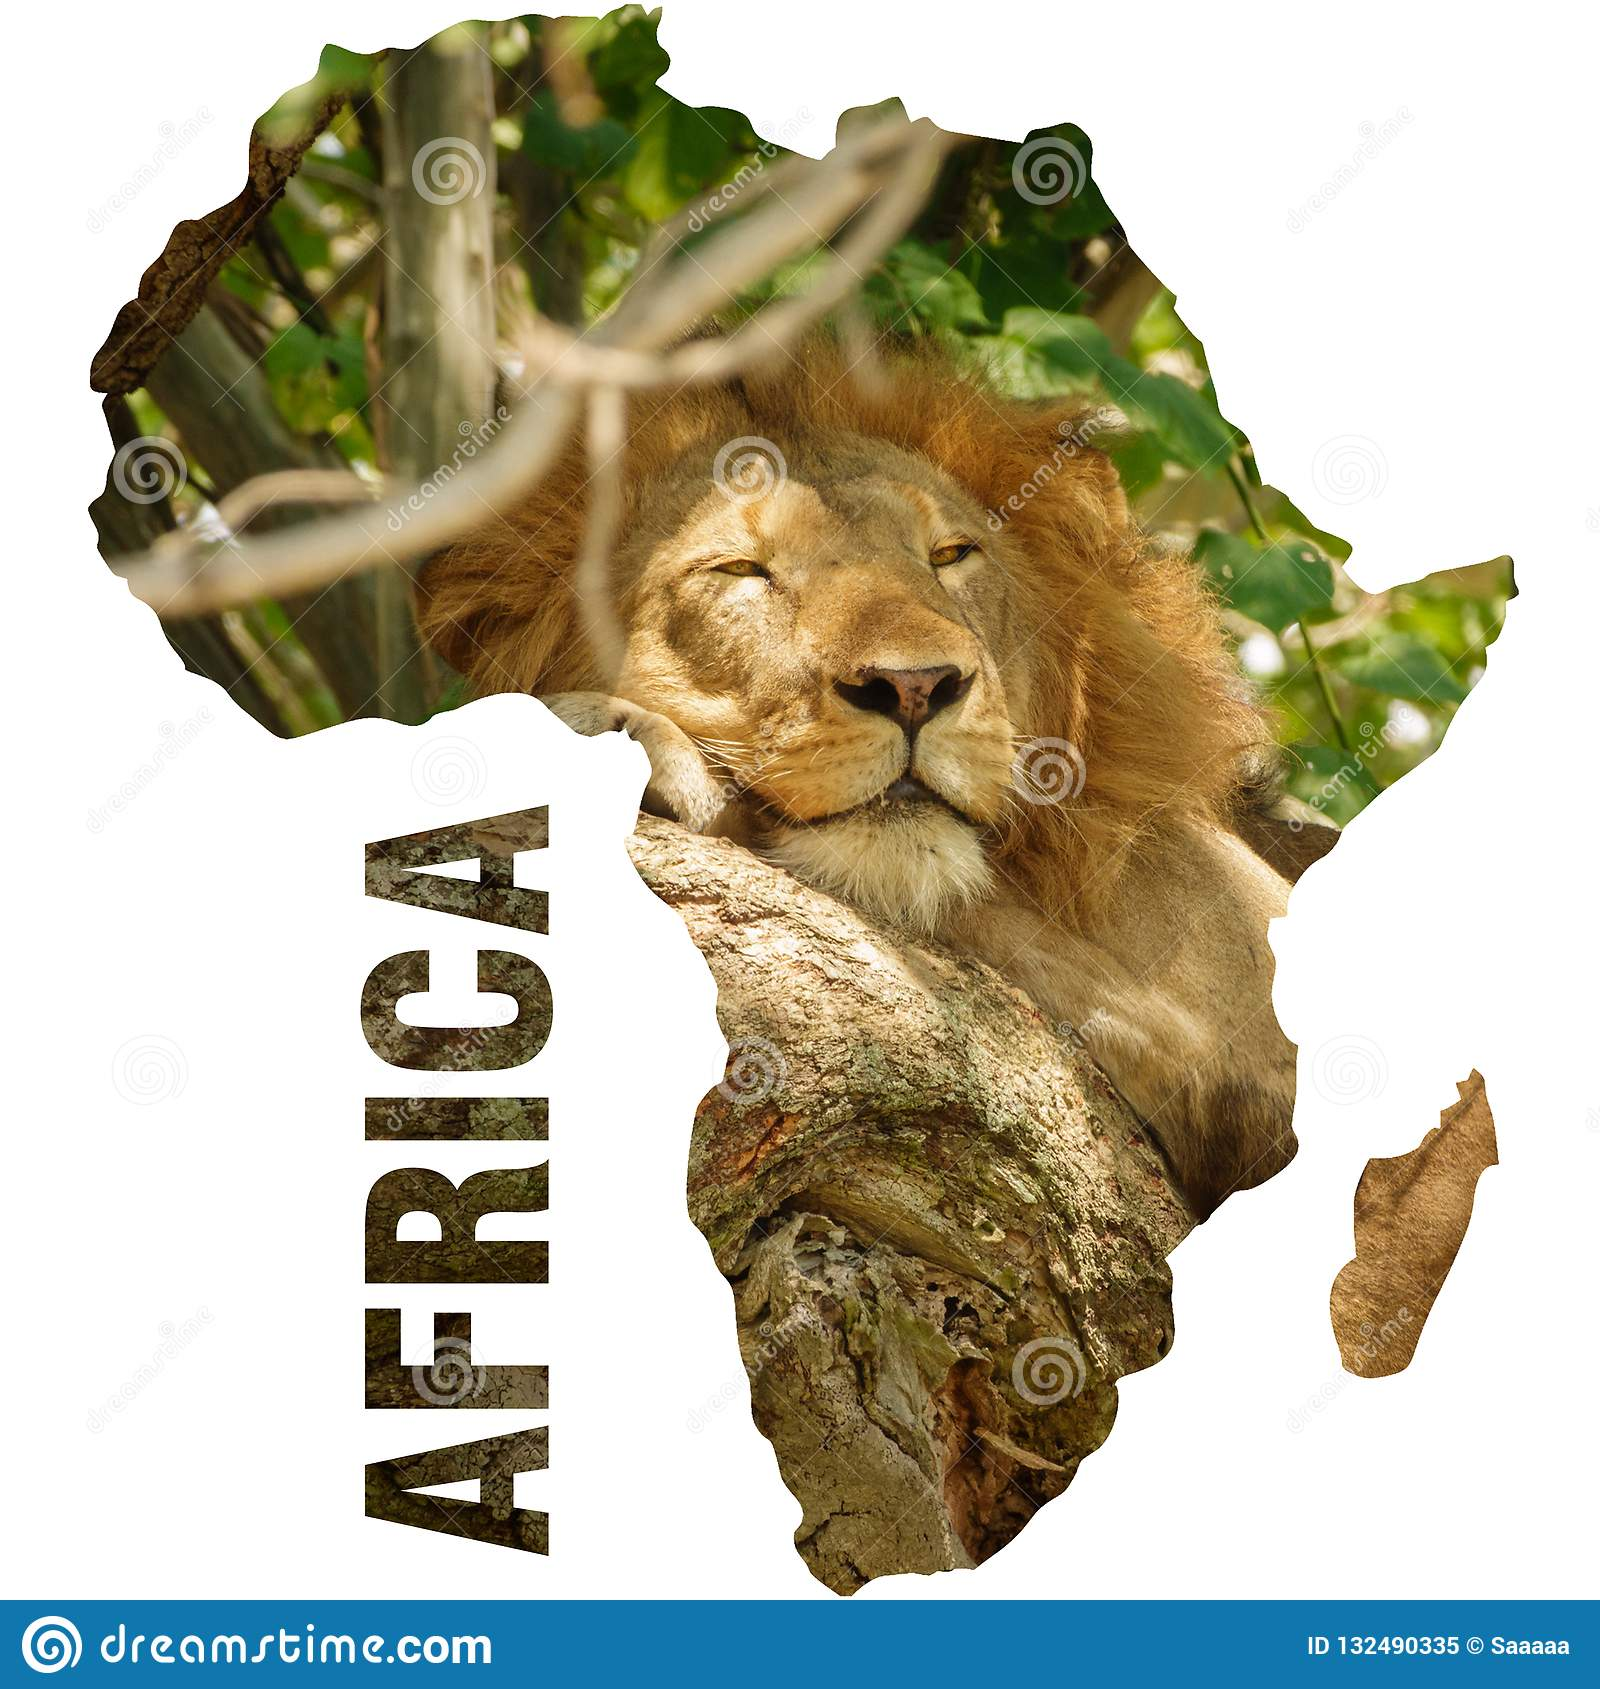 Lion Outline Photos Free Royalty Free Stock Photos From Dreamstime Choose from 5,332 printable design templates, like roaring lion outline posters, flyers, mockups, invitation cards, business cards, brochure,etc. https www dreamstime com wild lion sleepoing over tree branch africa continent outline africa continent outline male lion sleeping tree branch image132490335